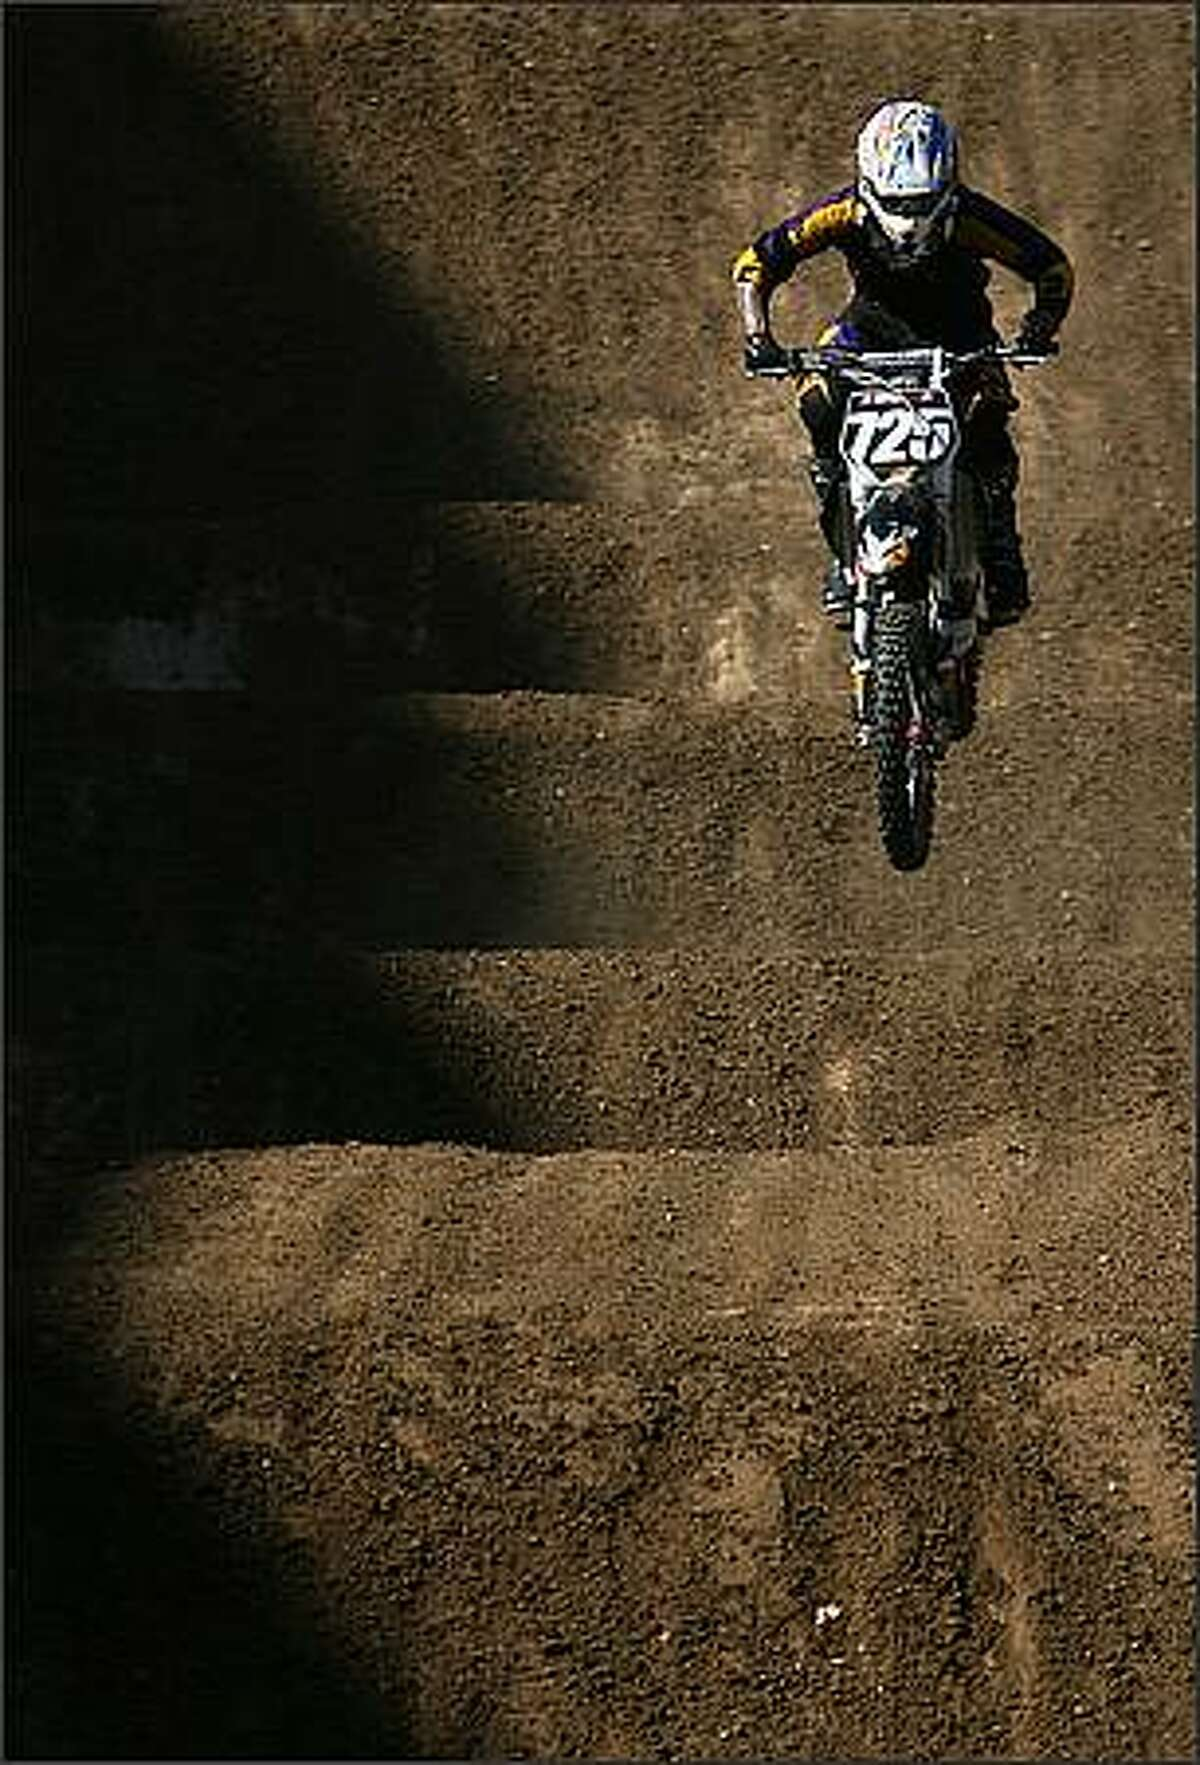 Logan Darien practices on the Moto X Racing course during the Summer X Games 14 at Home Depot Center in Carson, California. (Photo by Christian Petersen/Getty Images)